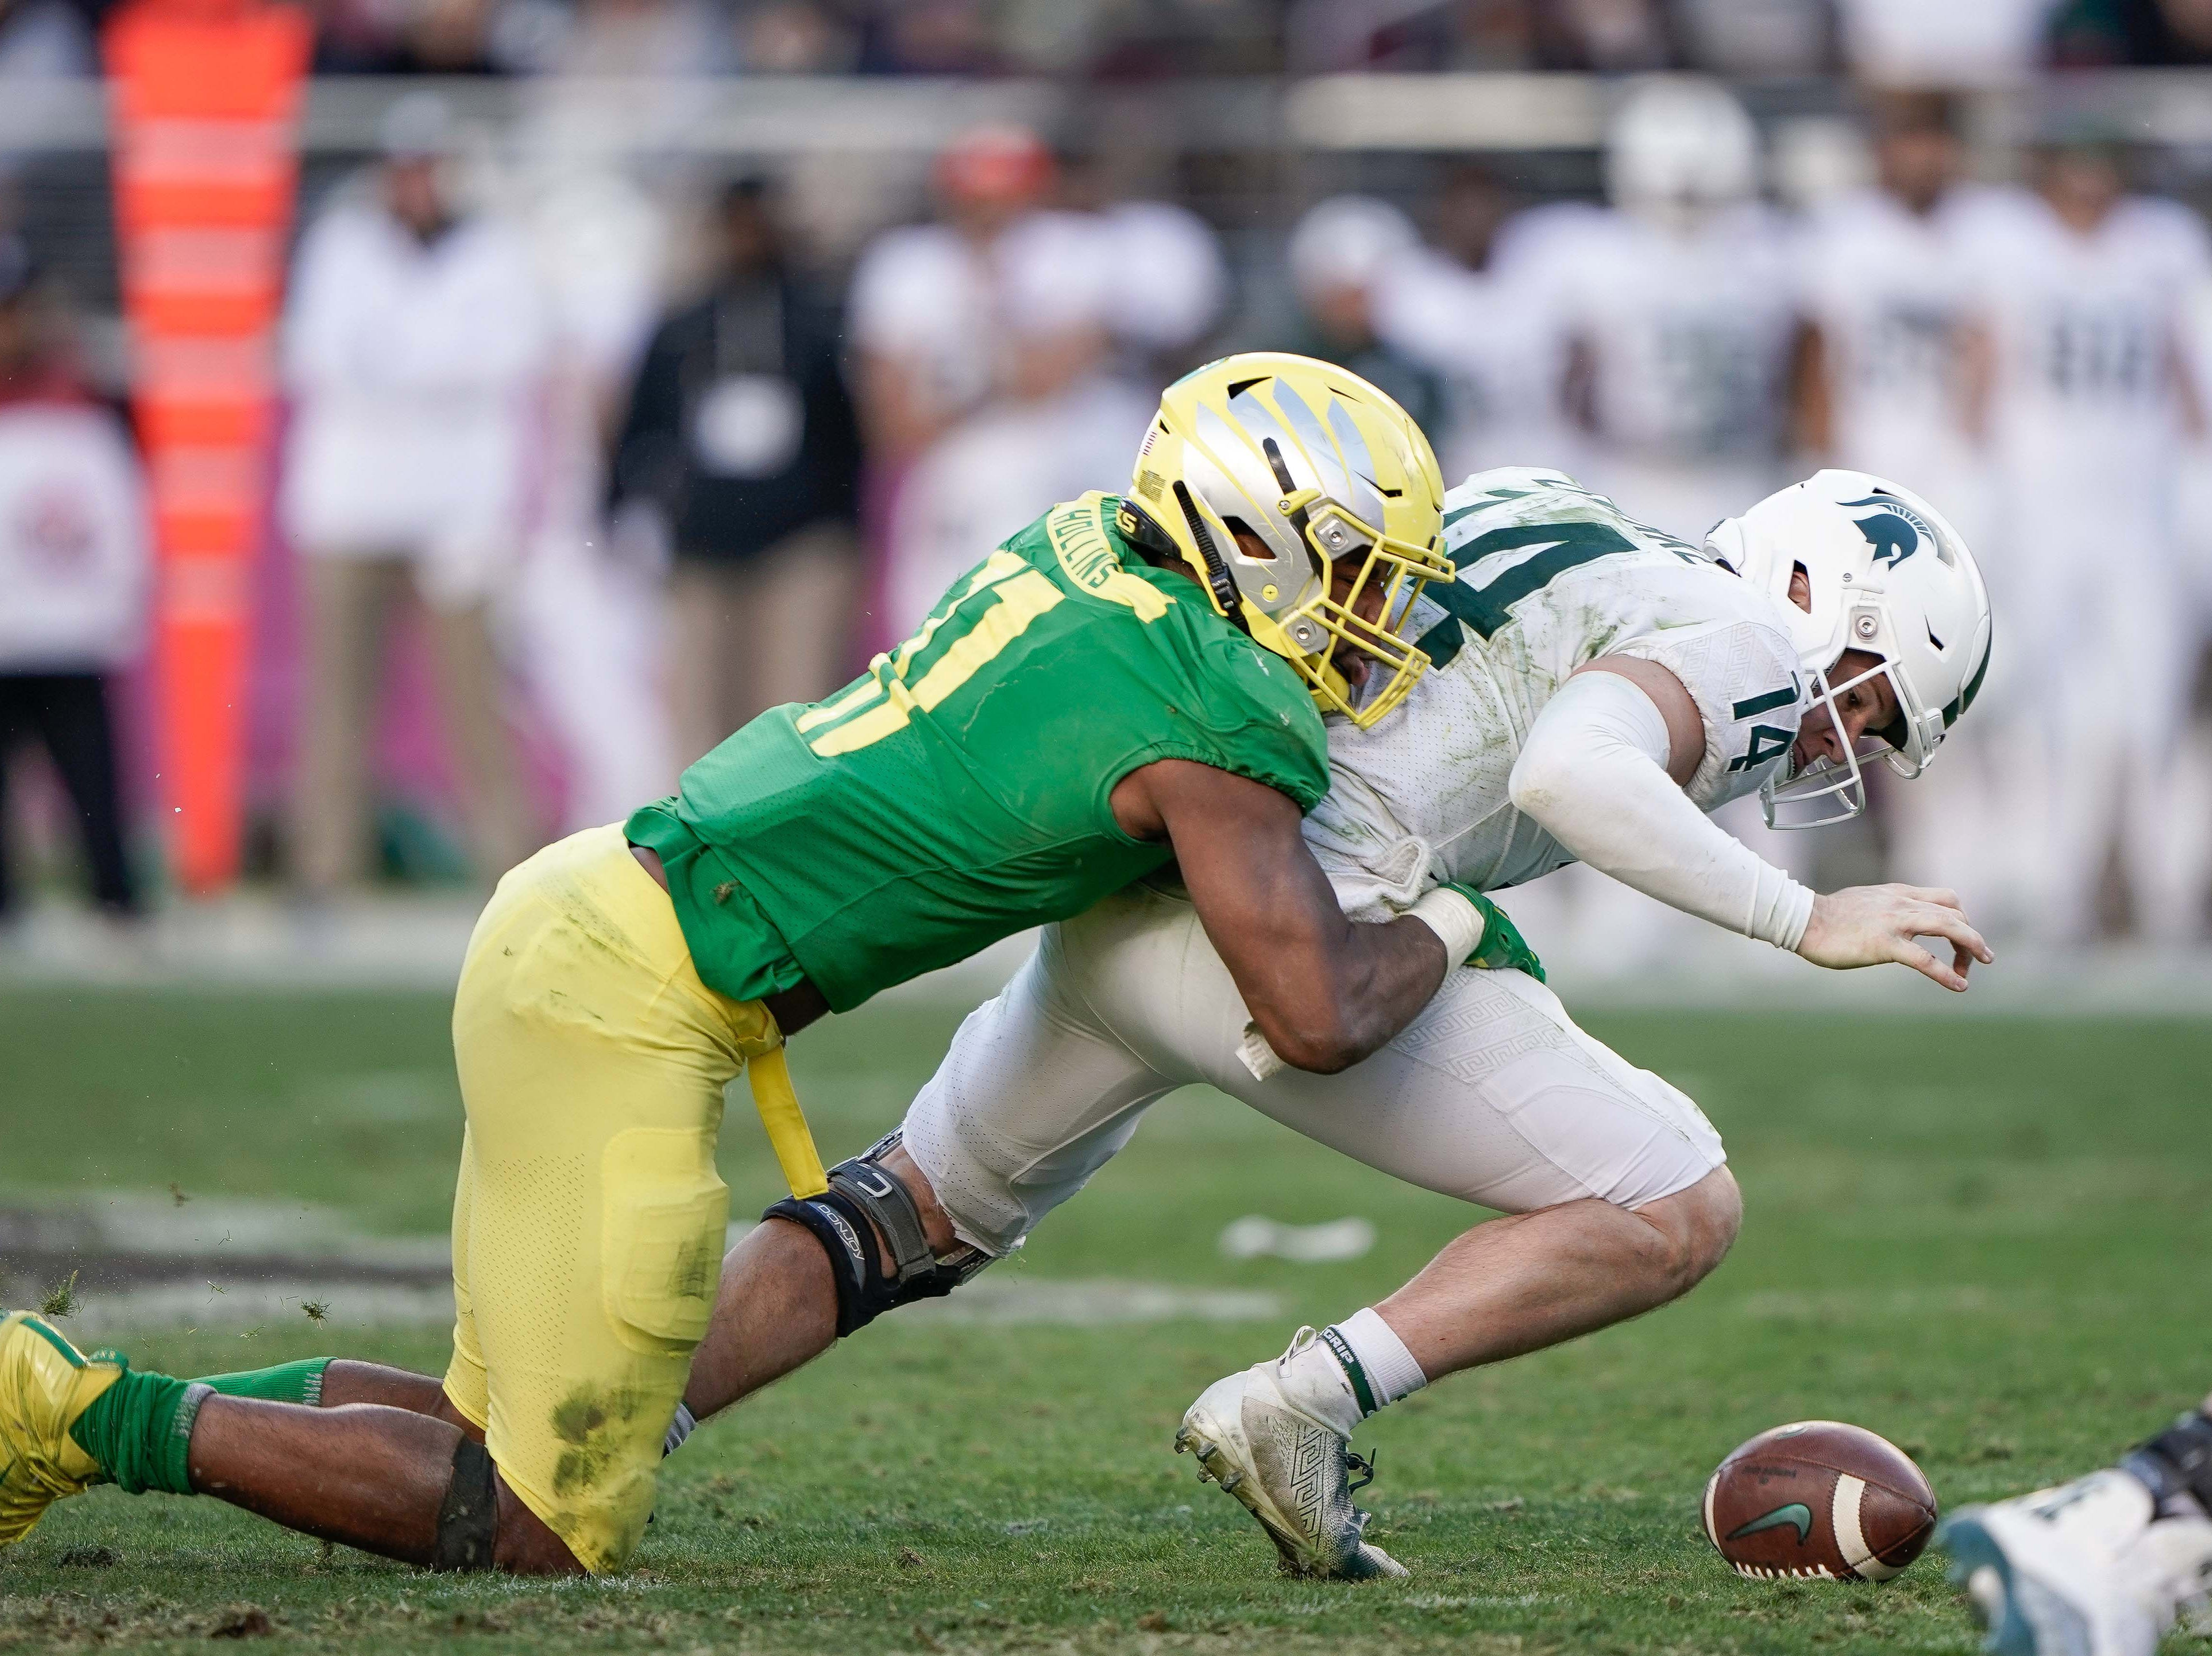 Oregon Ducks linebacker Justin Hollins (11) forces a fumble by Michigan State Spartans quarterback Brian Lewerke (14) during the fourth quarter of the Redbox Bowl.